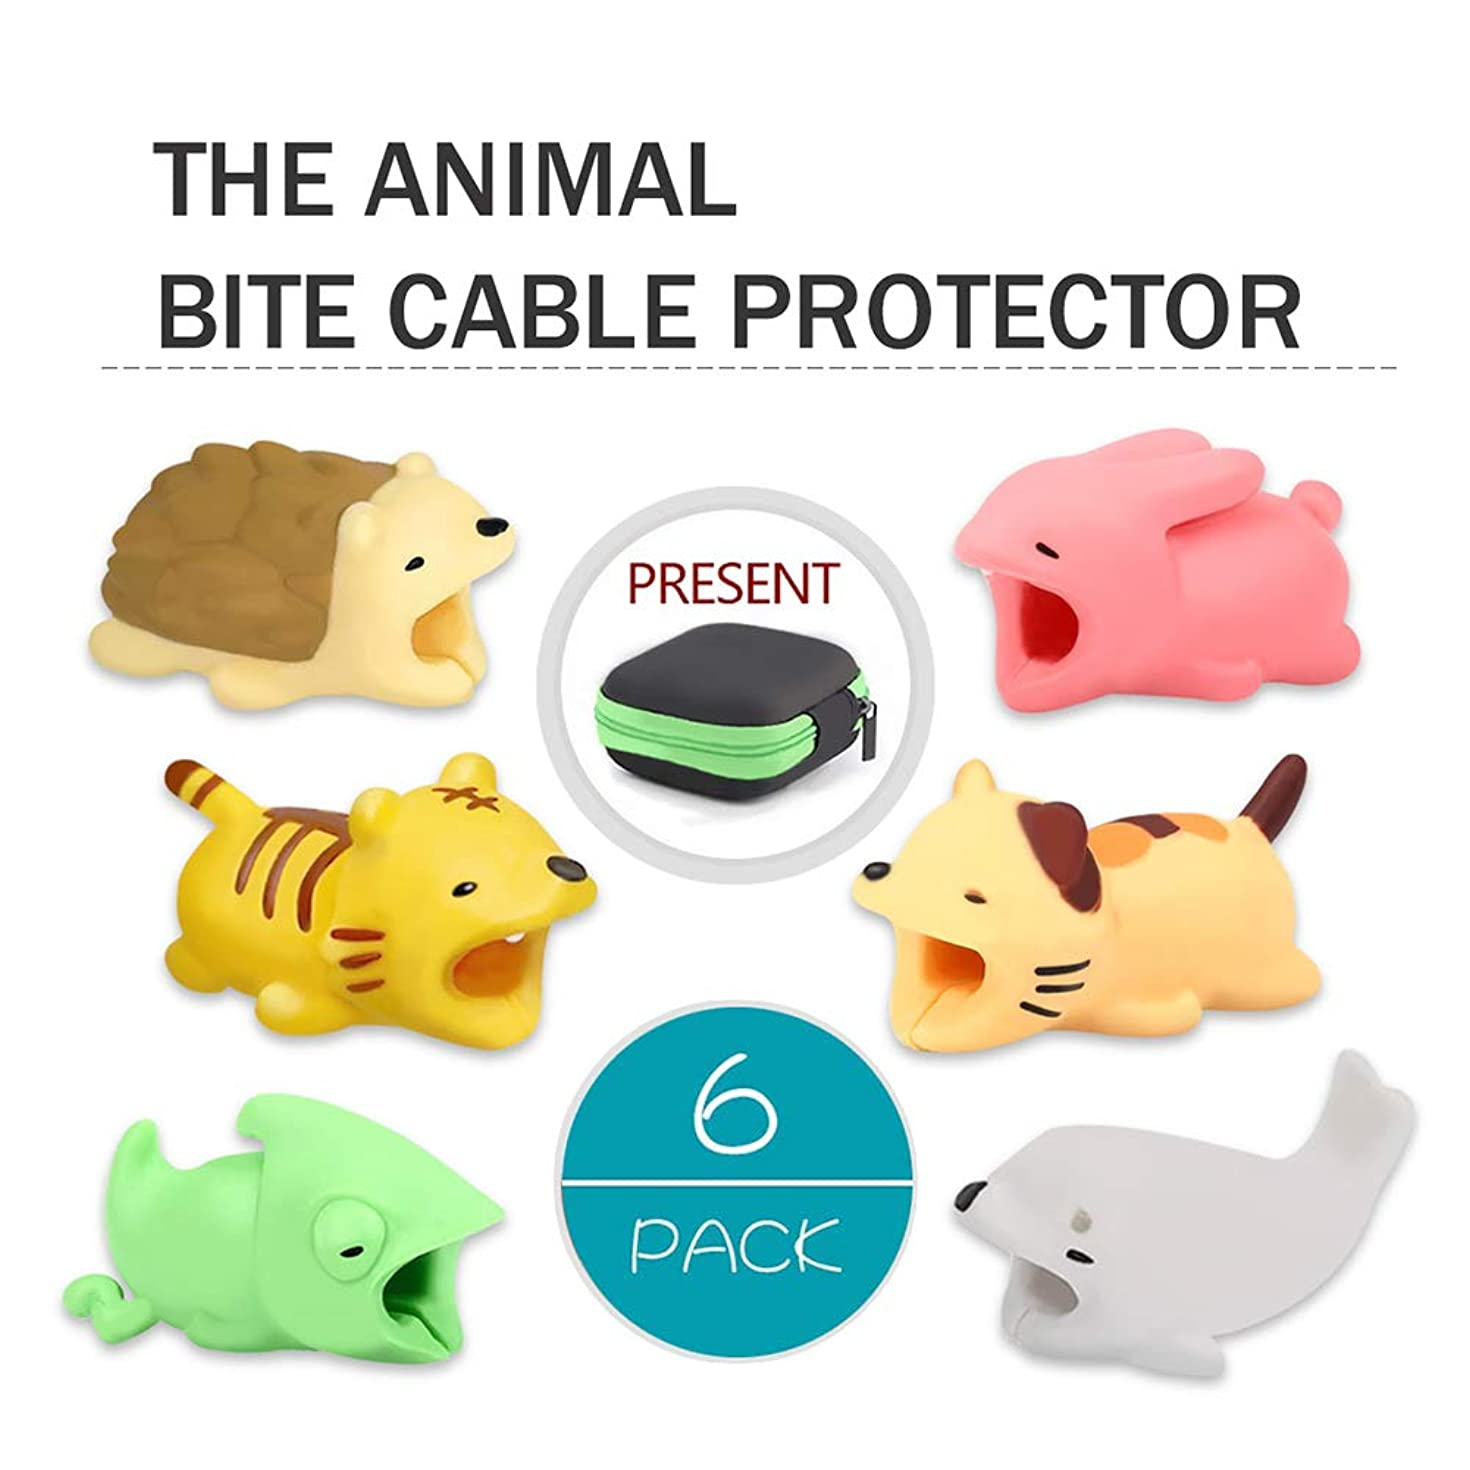 Cable Bite,Animal Bite Cable Protector with Earphone Storage Bag Tiger Animals Cable Bite Cable Buddies Cord Protector - 6Pcs by HSWT